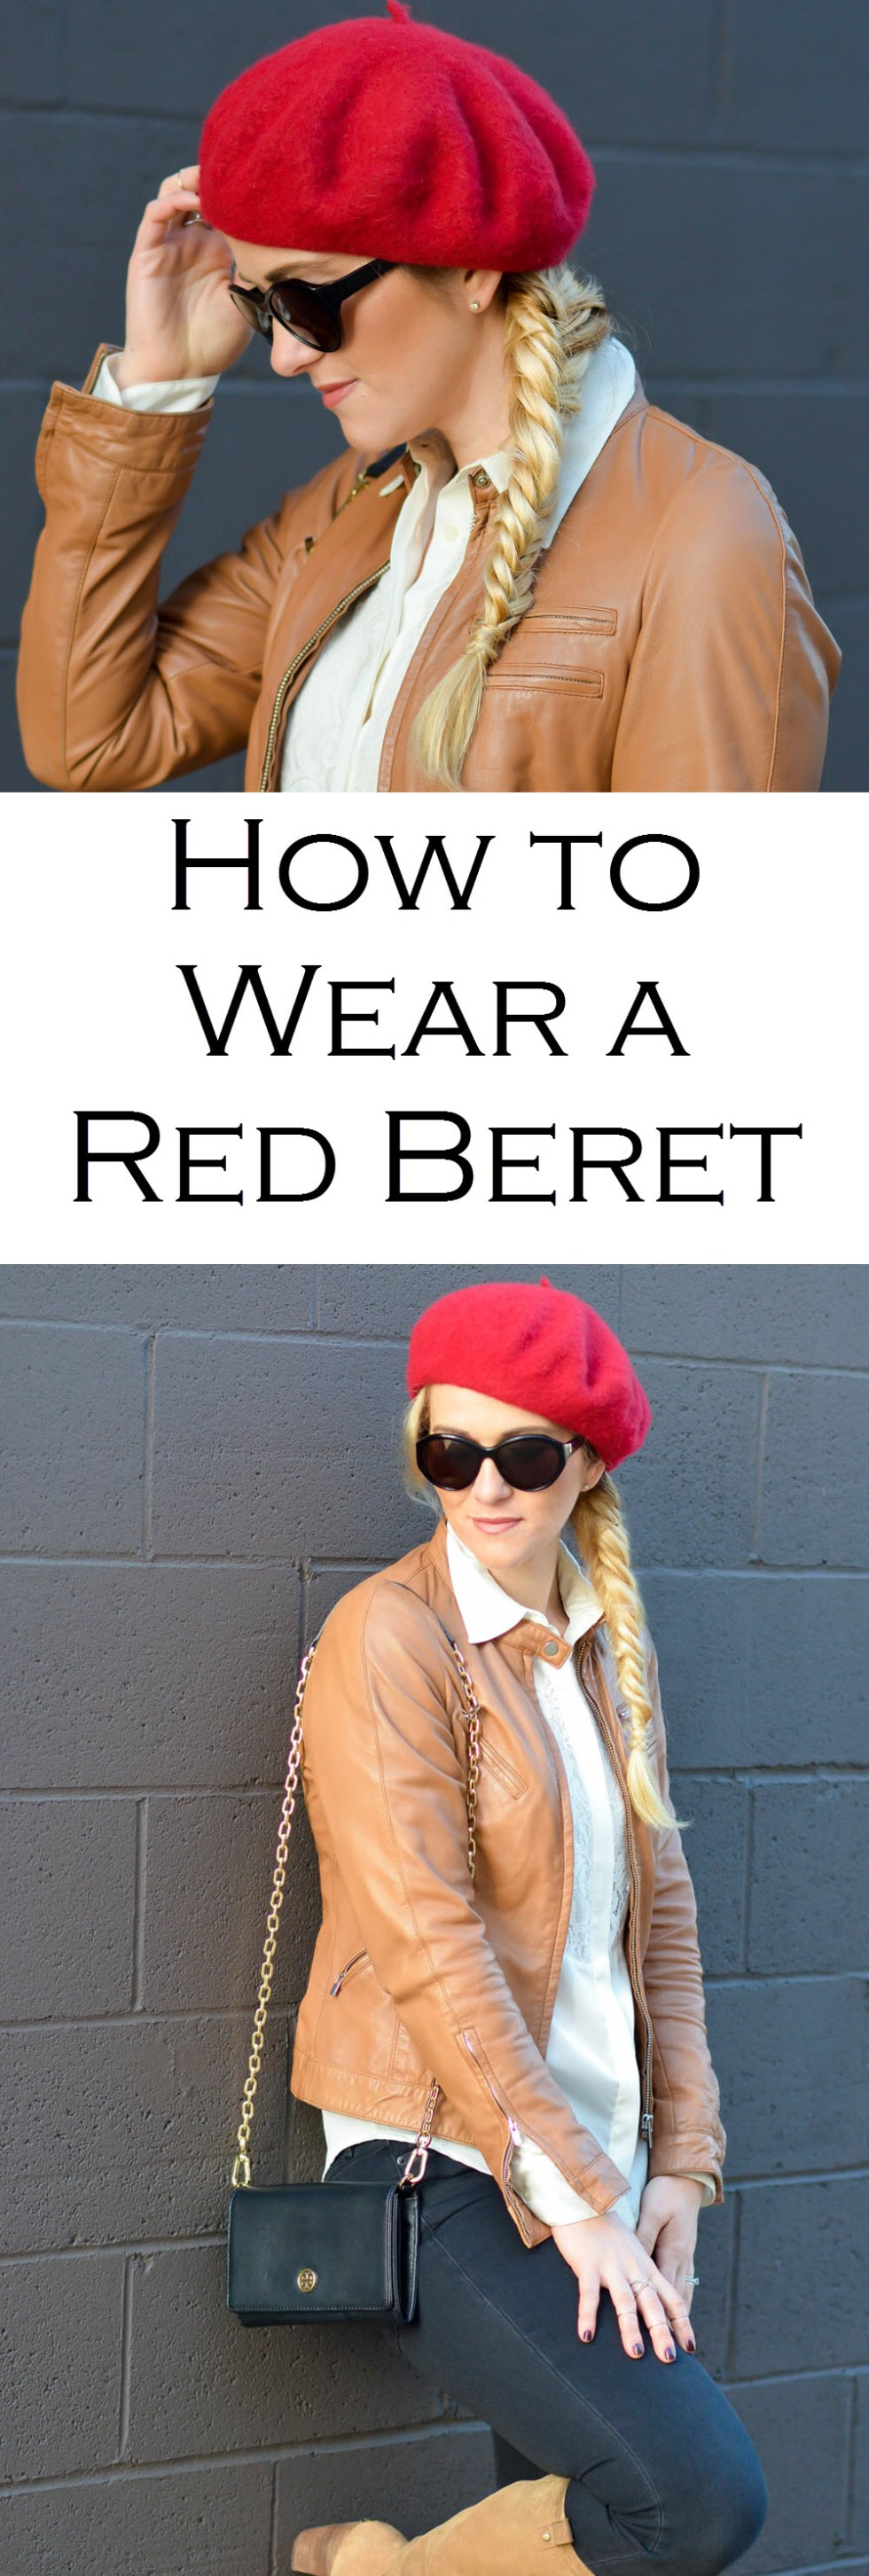 How to Wear a Red Beret w. Fishtail Braid